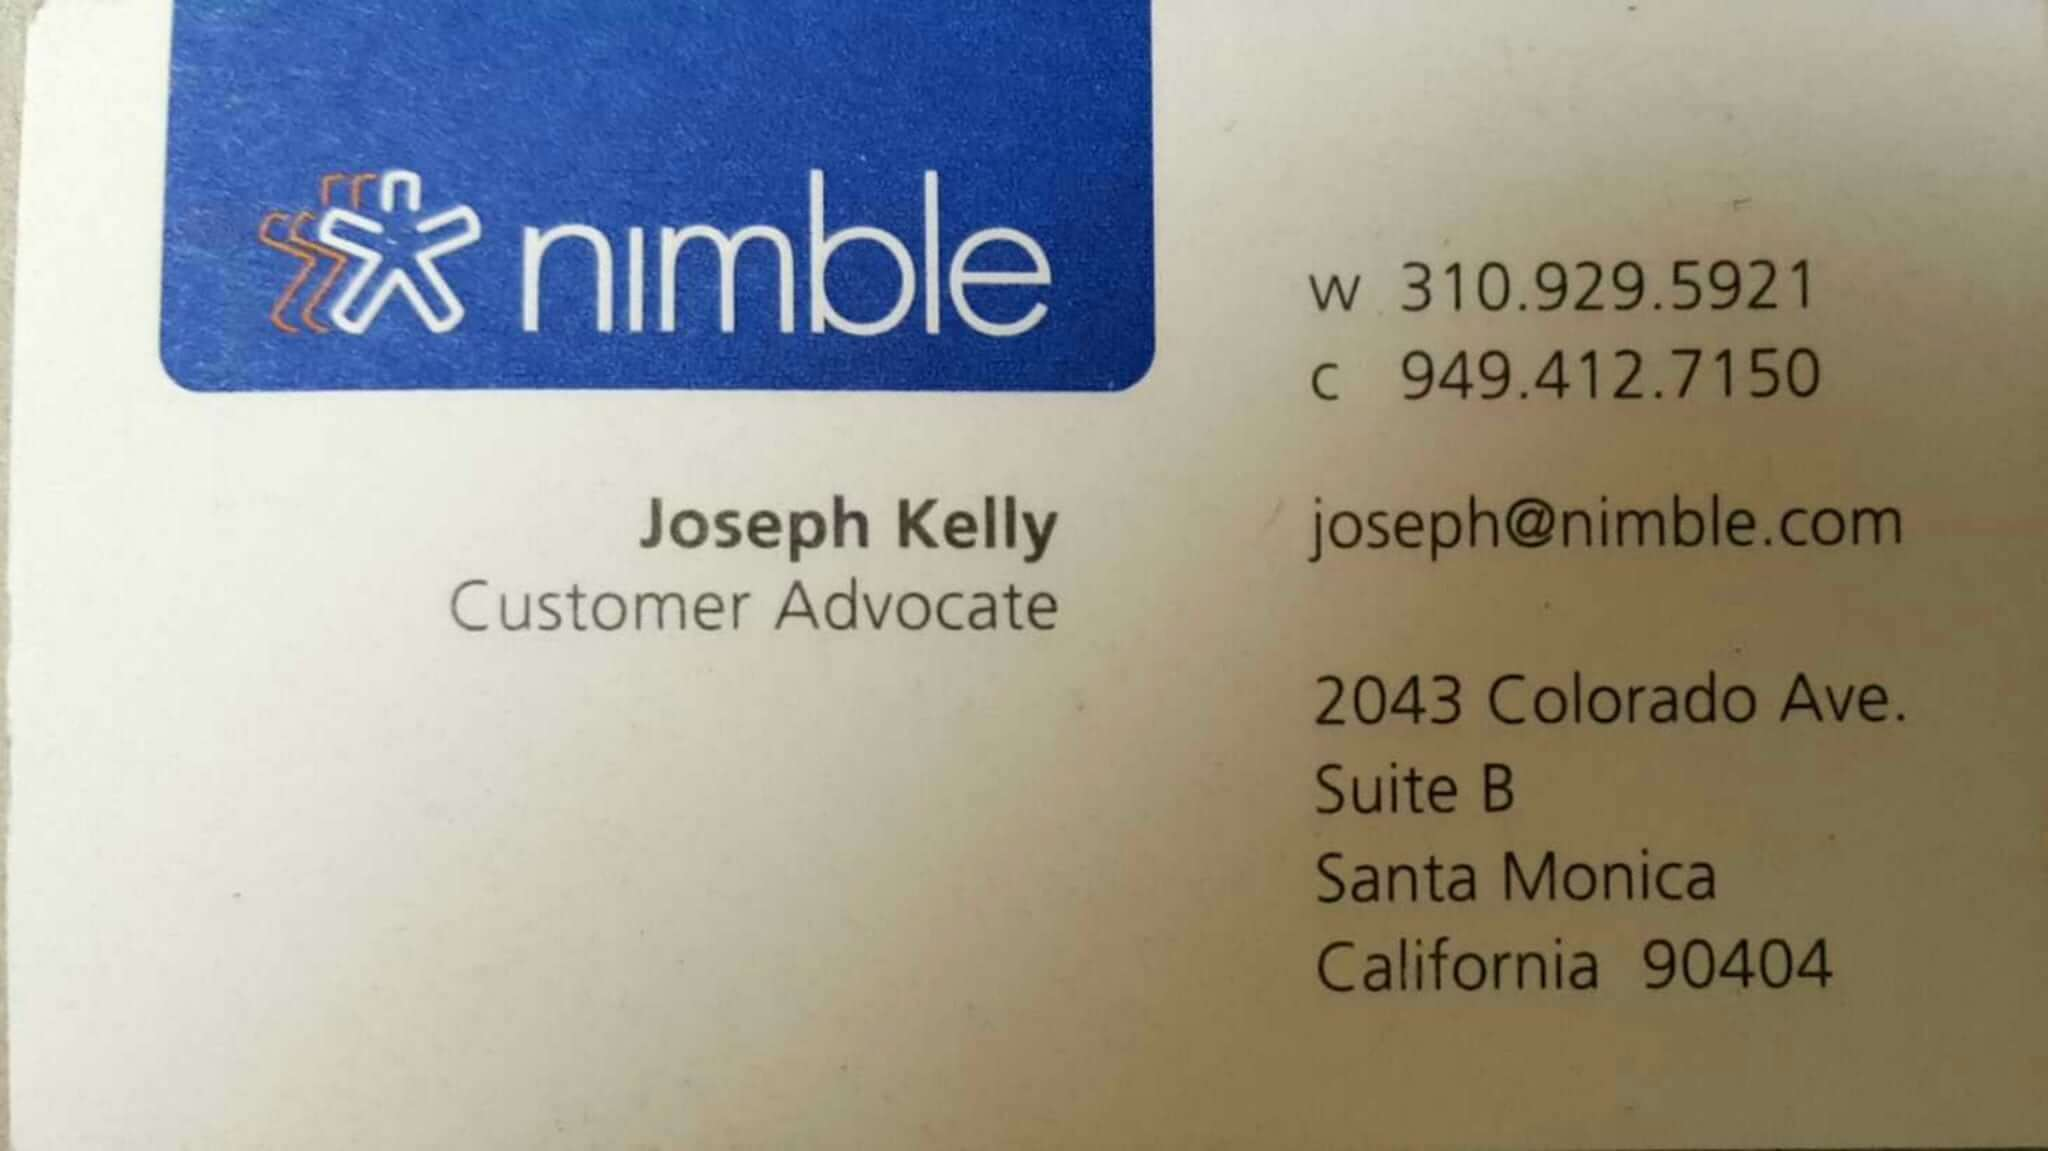 Nimble crm business card scanner for android nimble snap a photo of a card and nimble will add this information to a contact record and then enrich the record with additional social profile details colourmoves